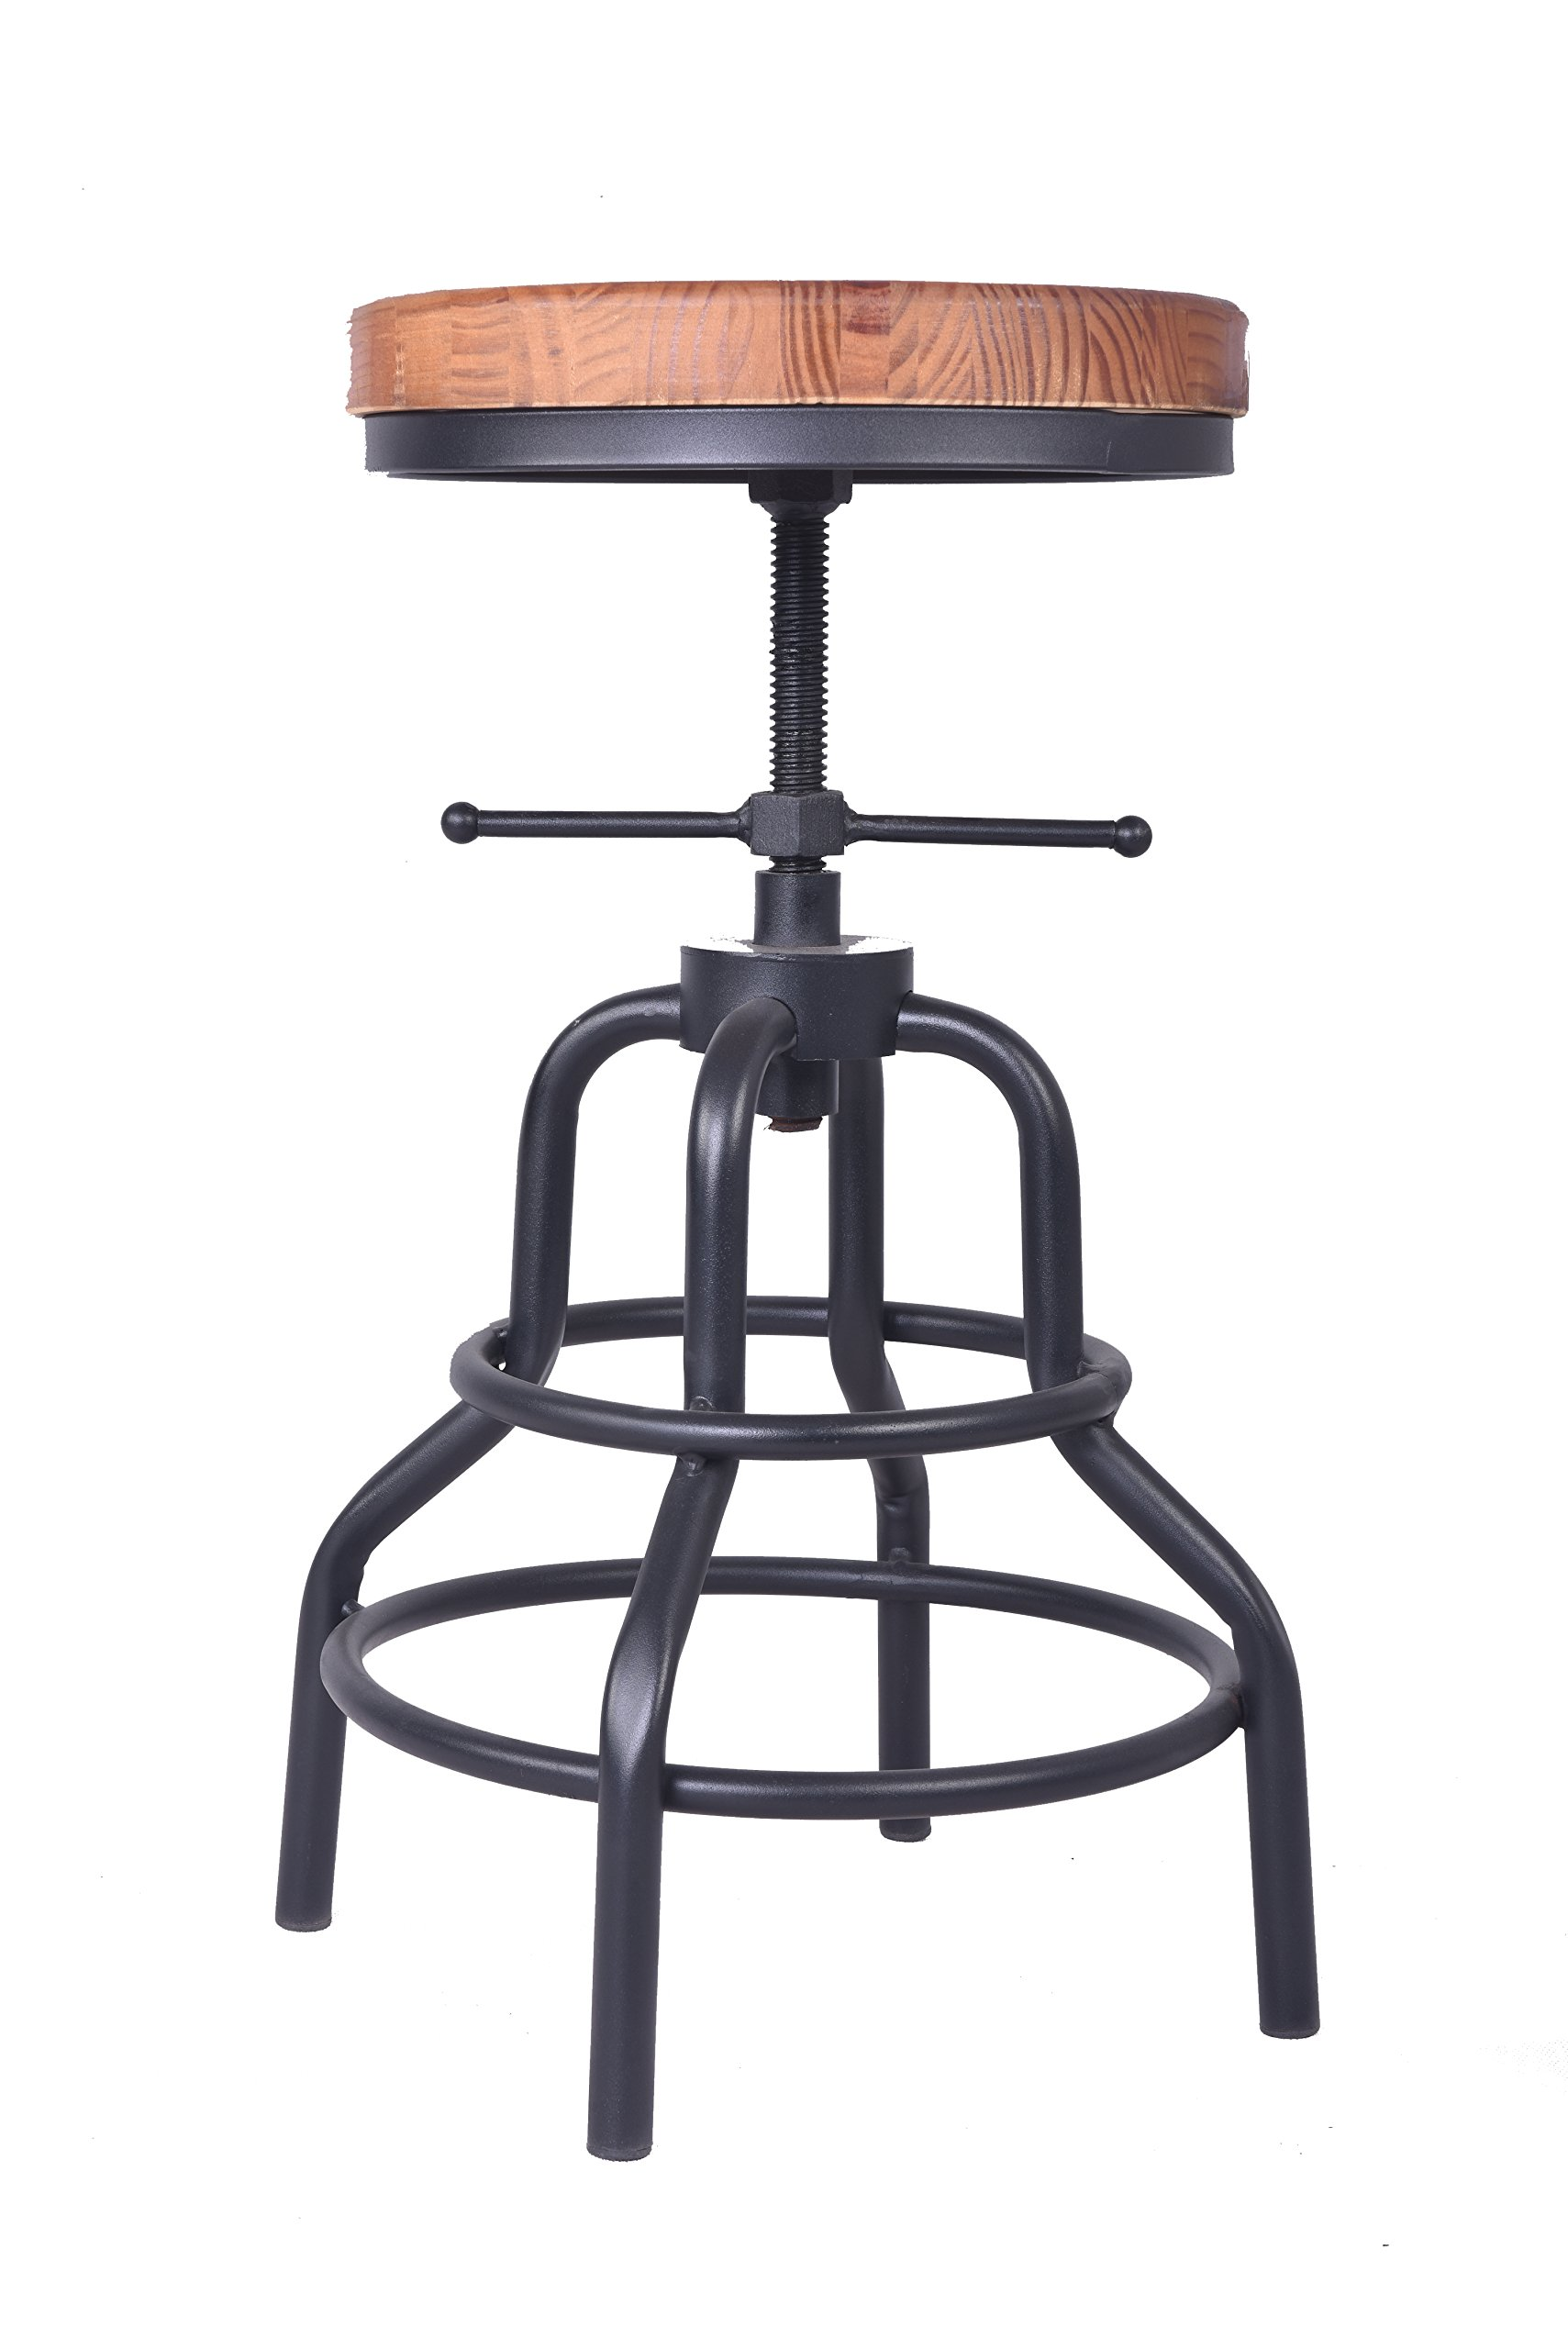 Articial Industrial Bar Stool,Swiveling Wood Seat,Metal Frame Footrest Function,Height Adjustable